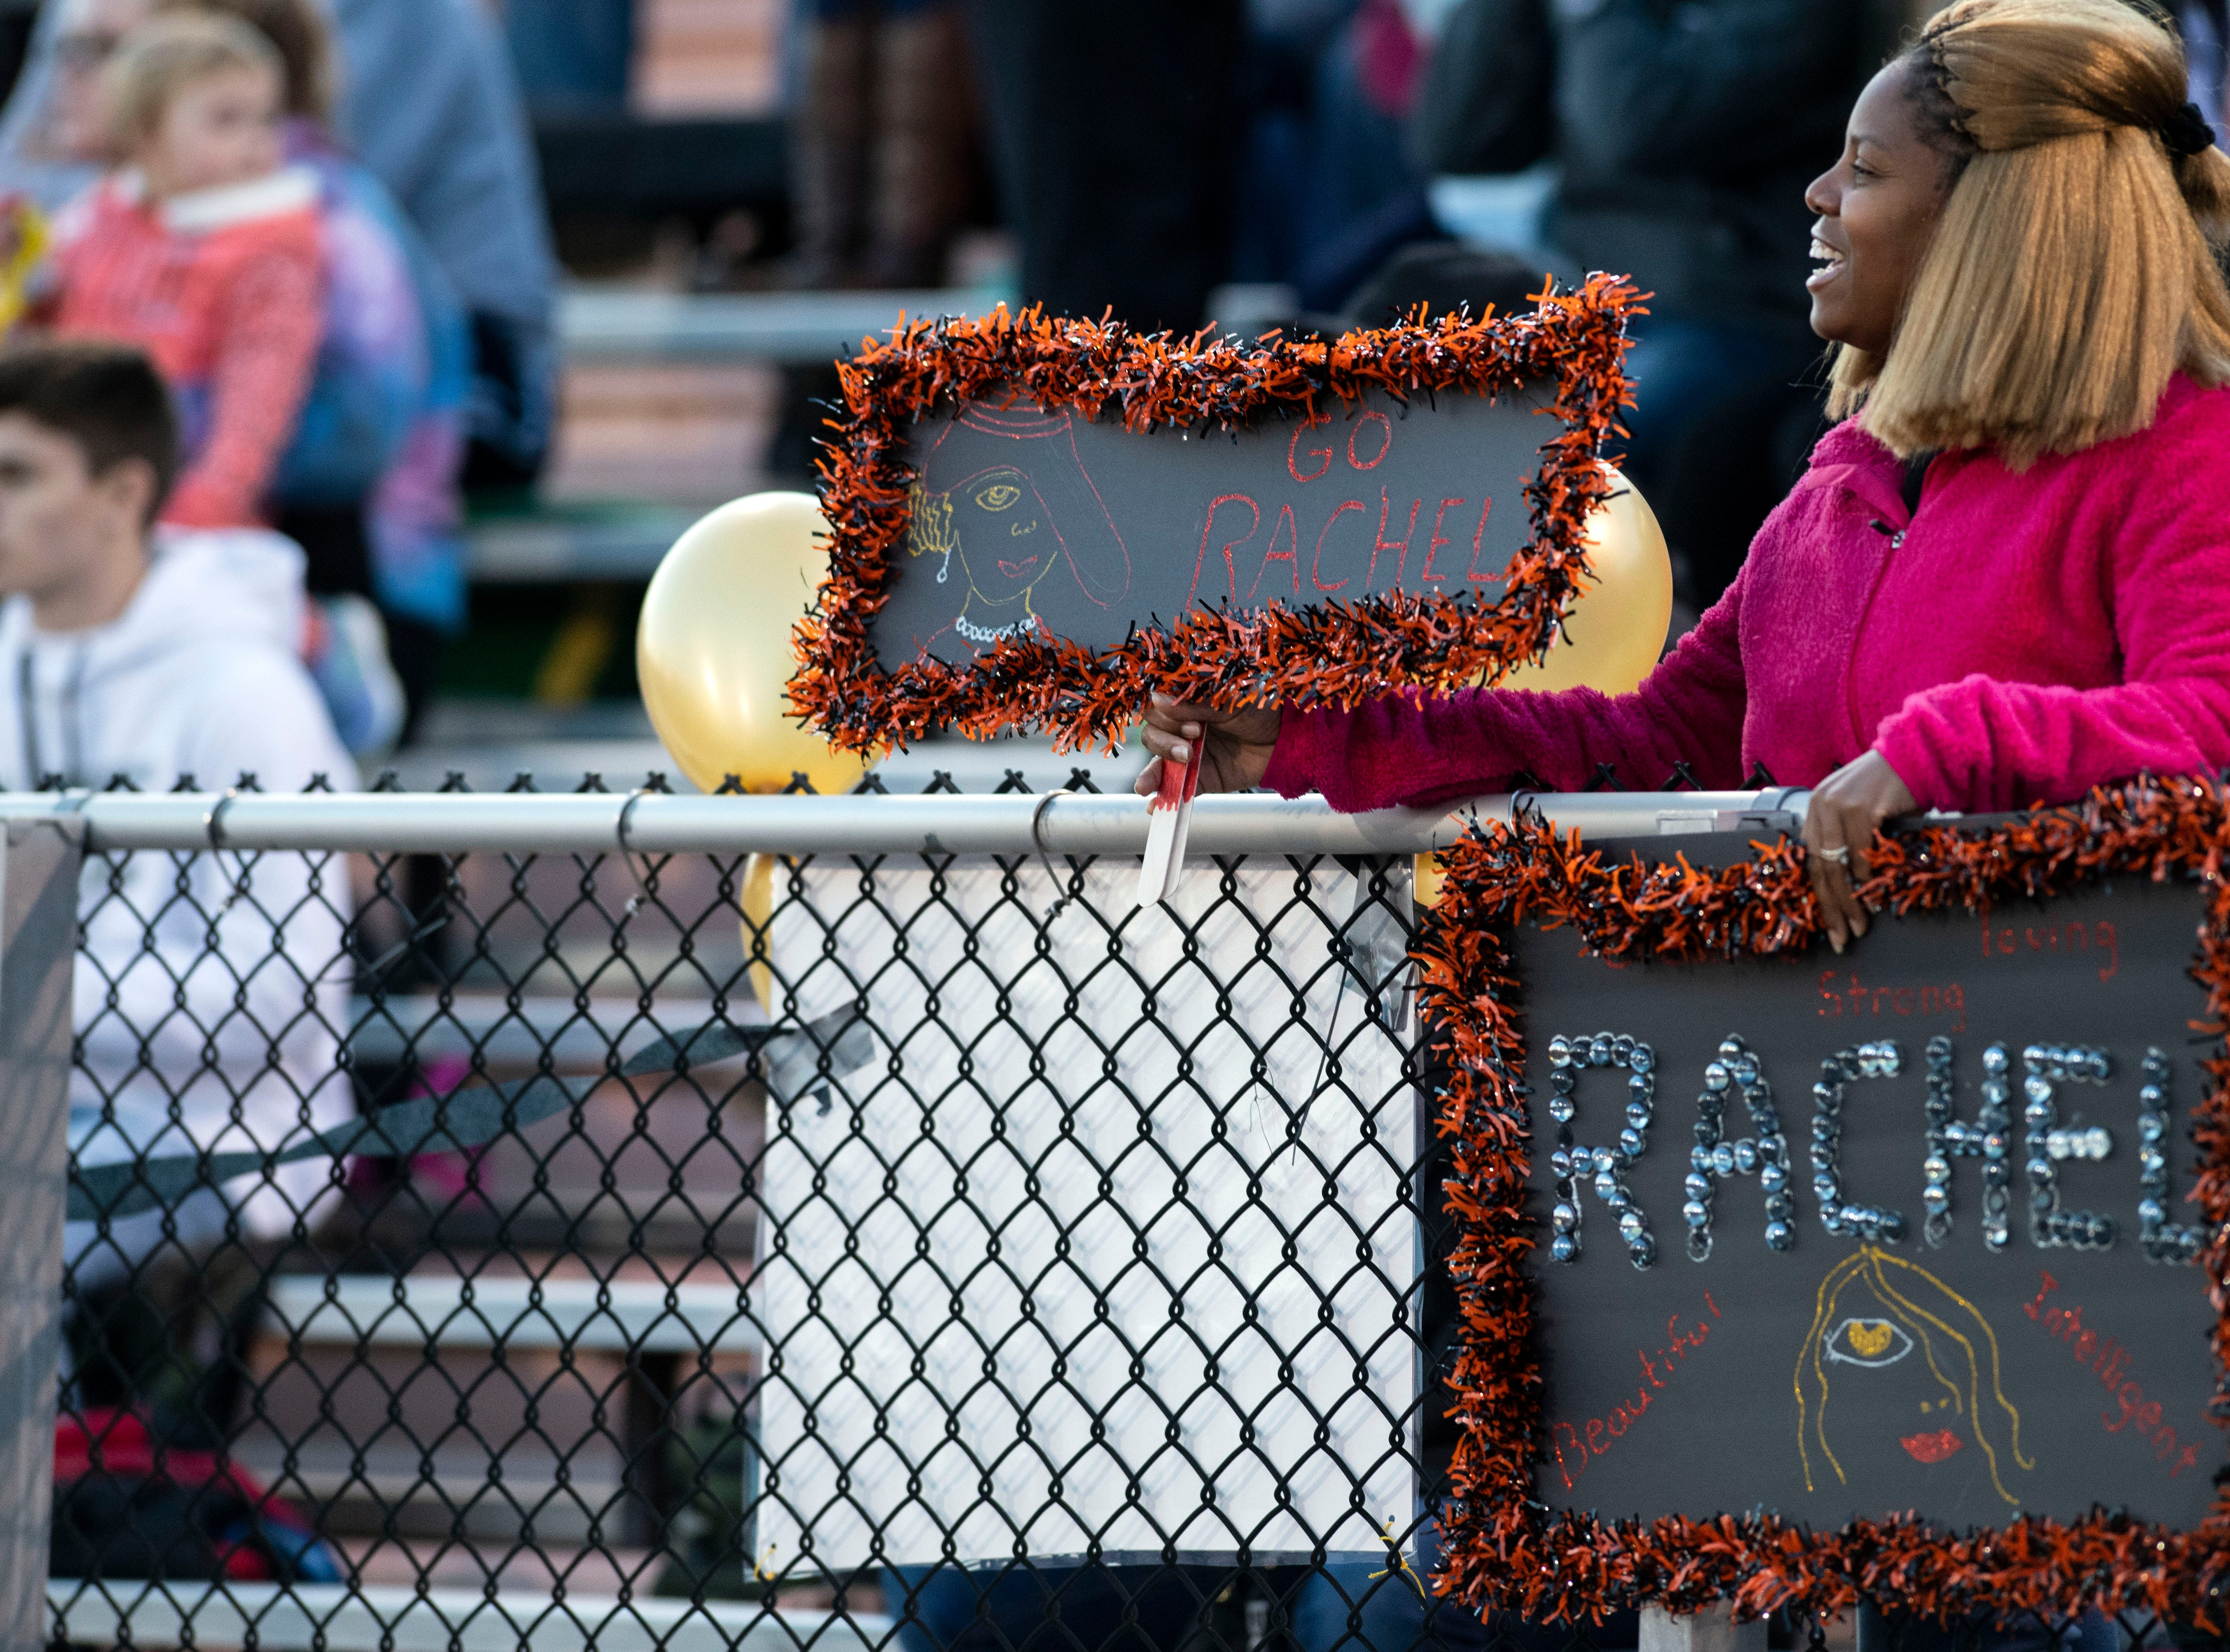 A fan cheers on a homecoming court member prior to a YAIAA Division I football game at Northeastern High School on Friday, Oct. 12, 2018. The Central York Panthers beat the Northeastern Bobcats, 44-7.